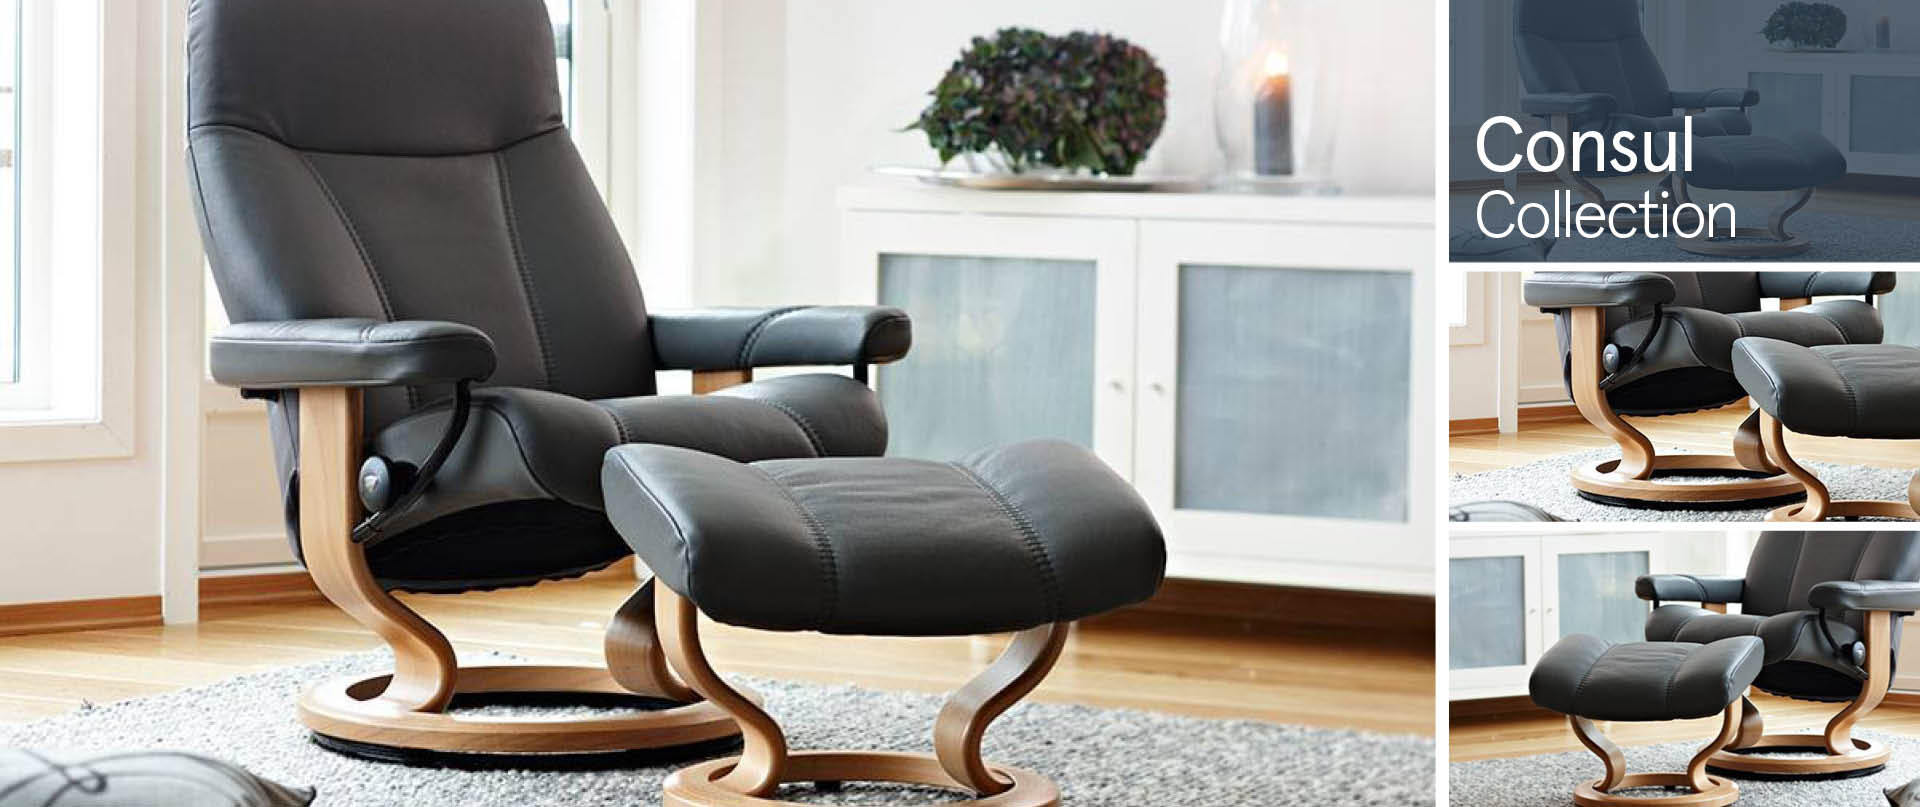 Consul All Chairs and Footstools  Ranges